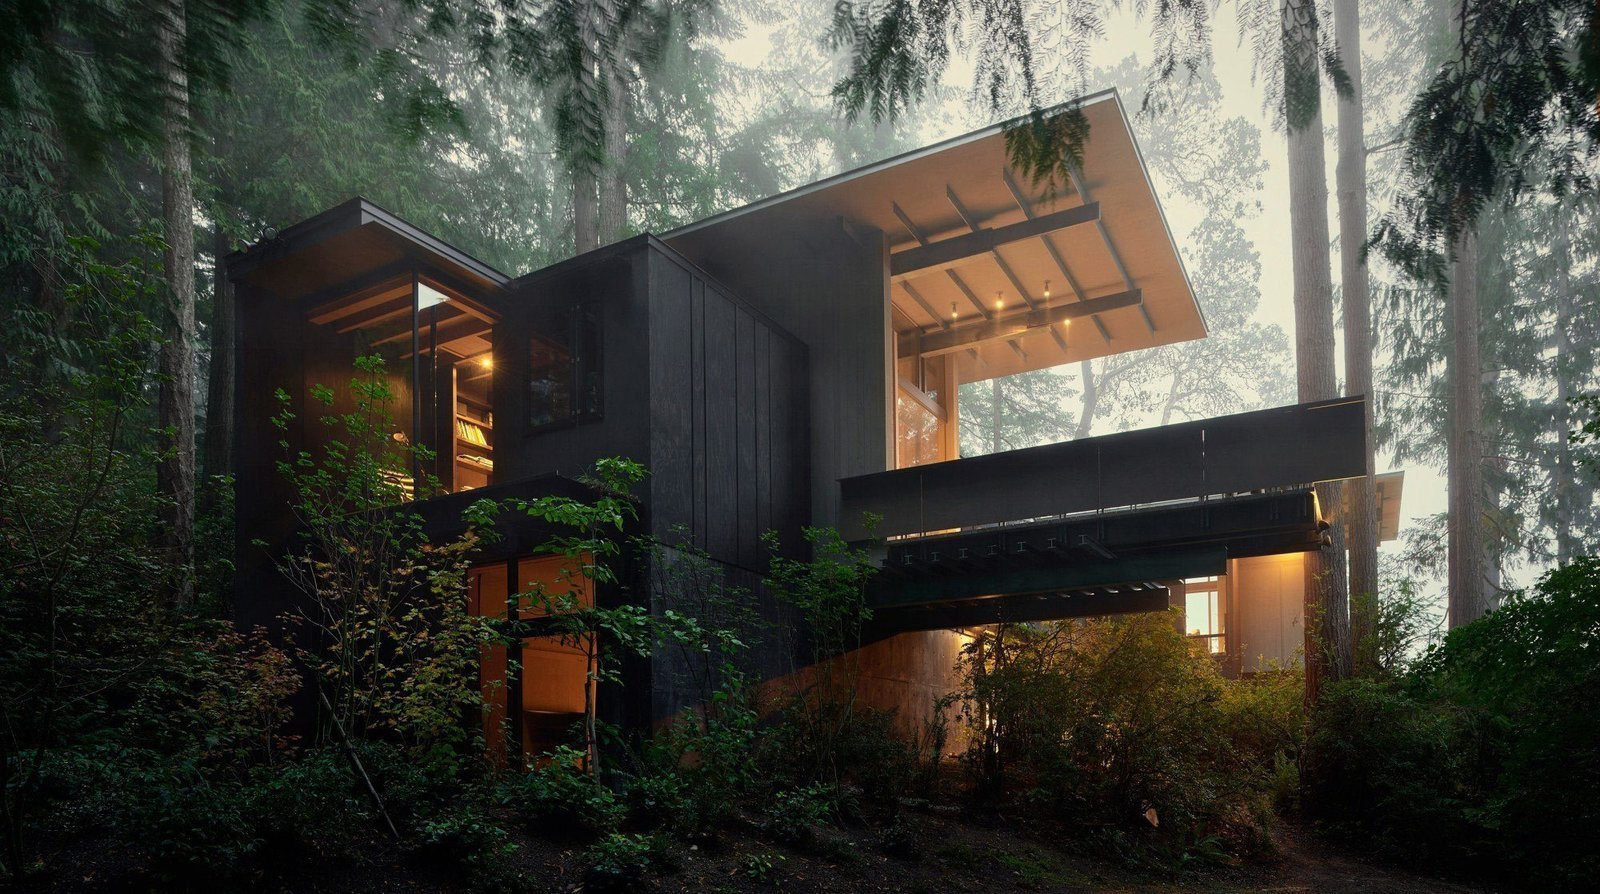 Olson Kundig Houses Collection of 35 Photos by Diana Budds - Dwell